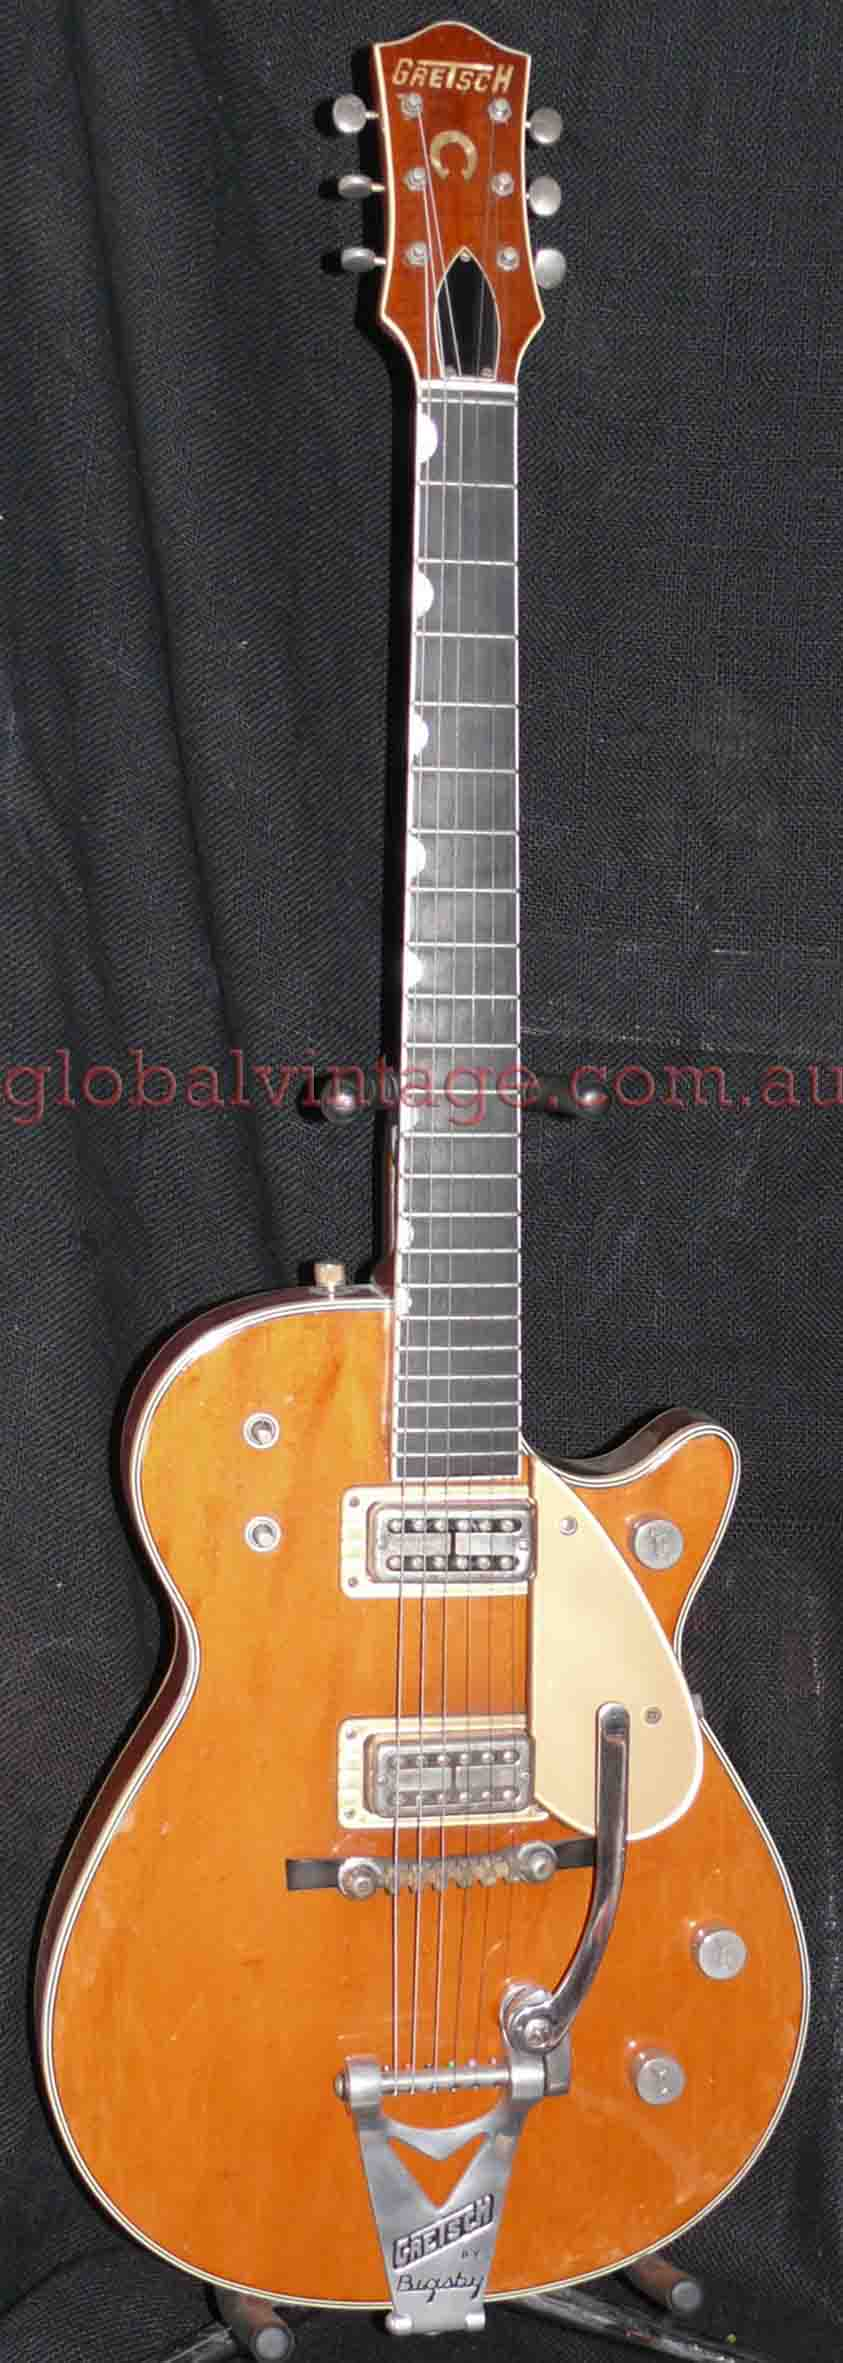 Gretsch U.S.A. 1959 Model 6121 Chet Atkins Soldibody